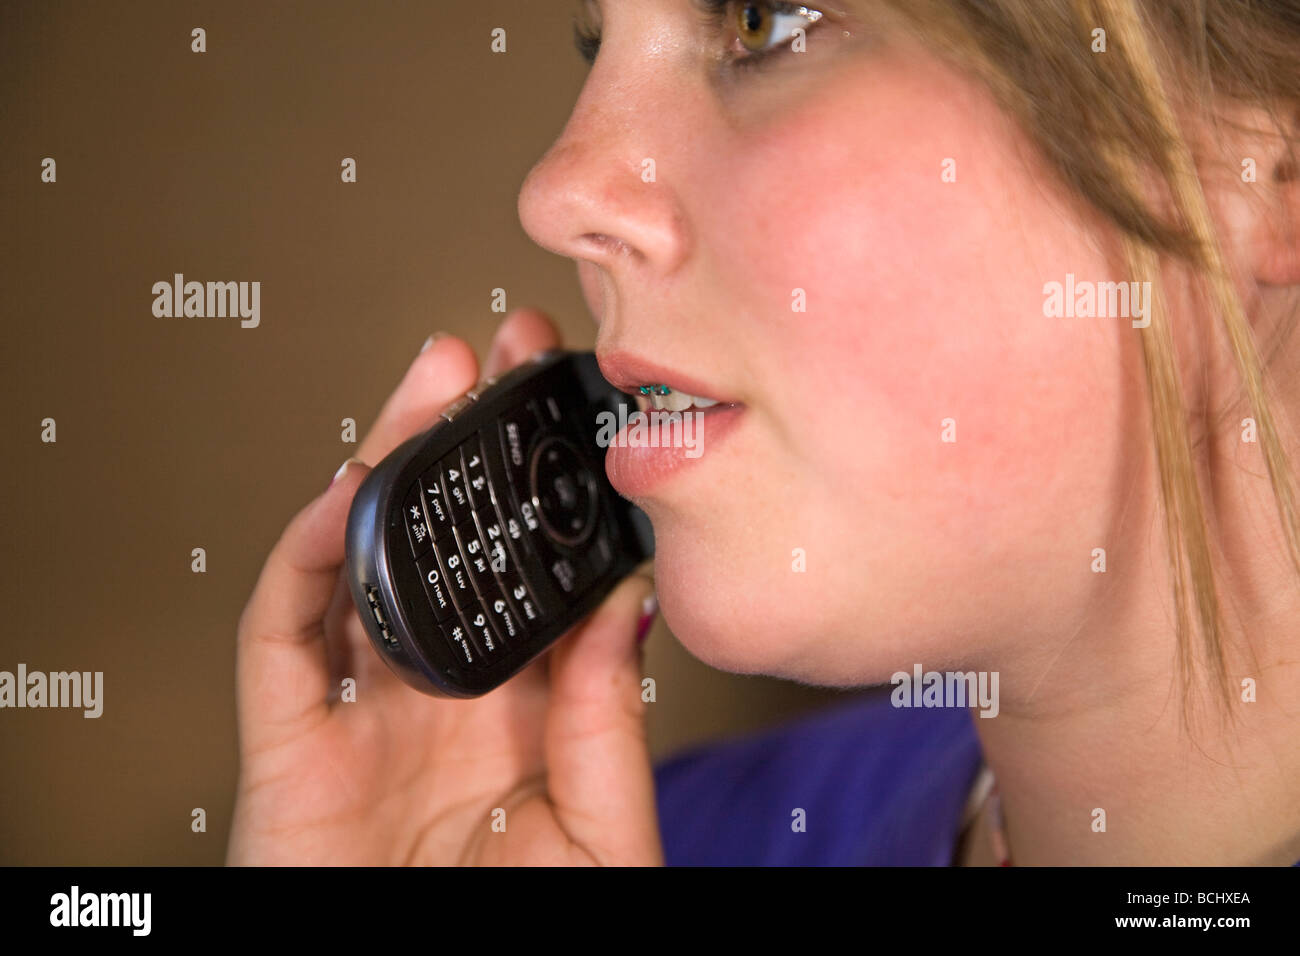 A teenager with braces talking on cell phone or a flip phone. - Stock Image